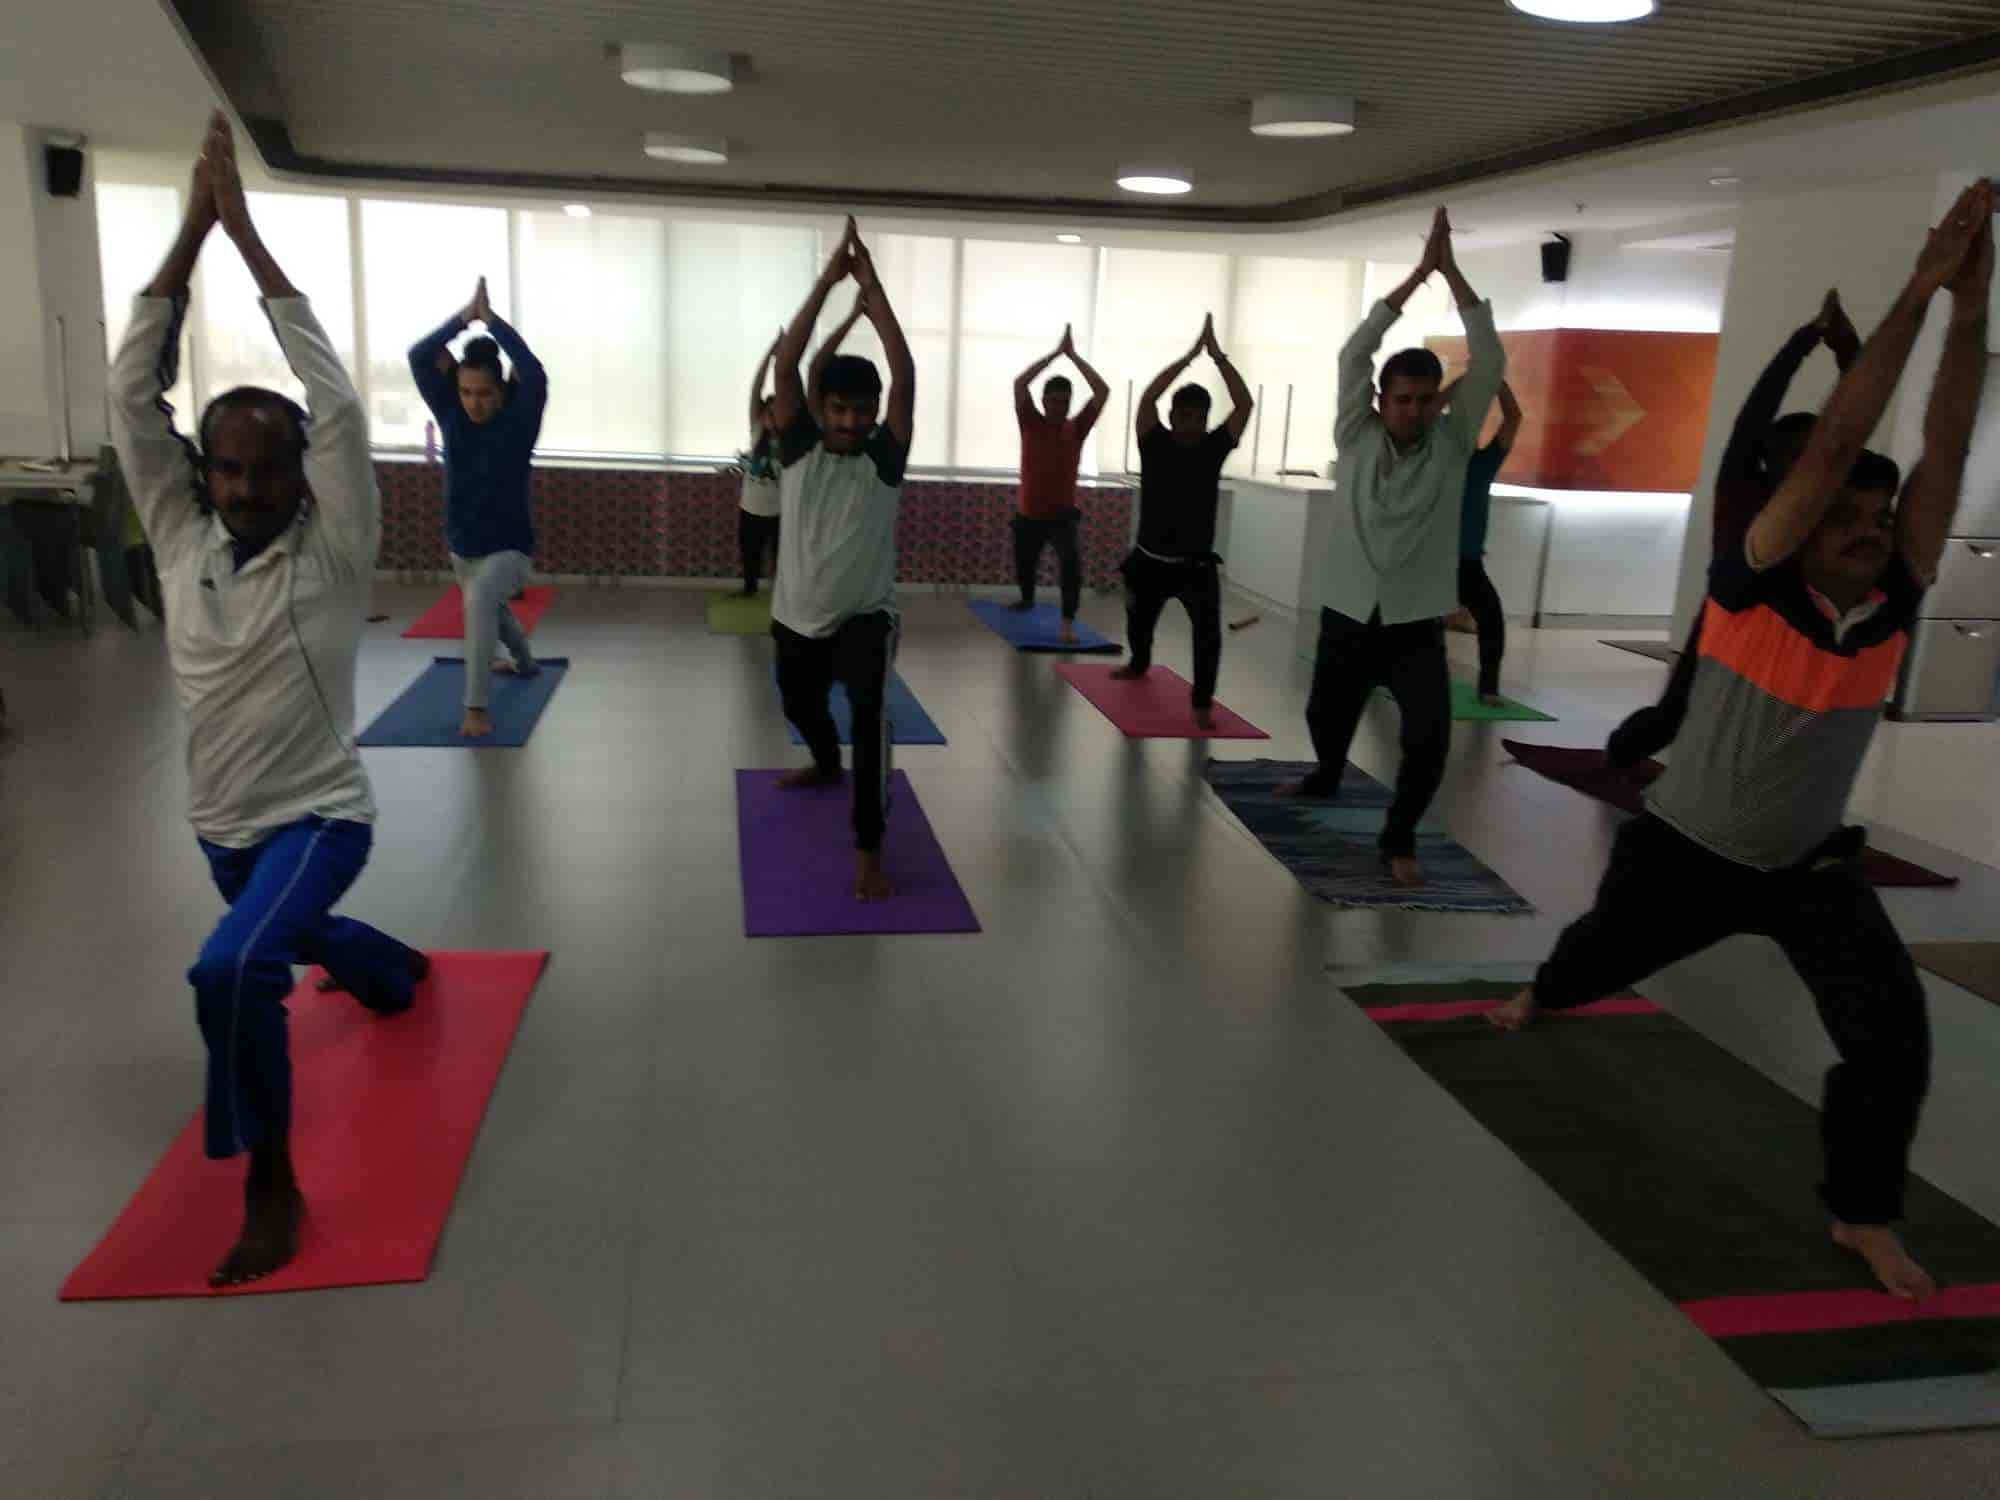 5779ff527a Prana Yoga Studio and Acupuncture Clinic, Hennur Main Road - Yoga Classes  in Bangalore - Justdial